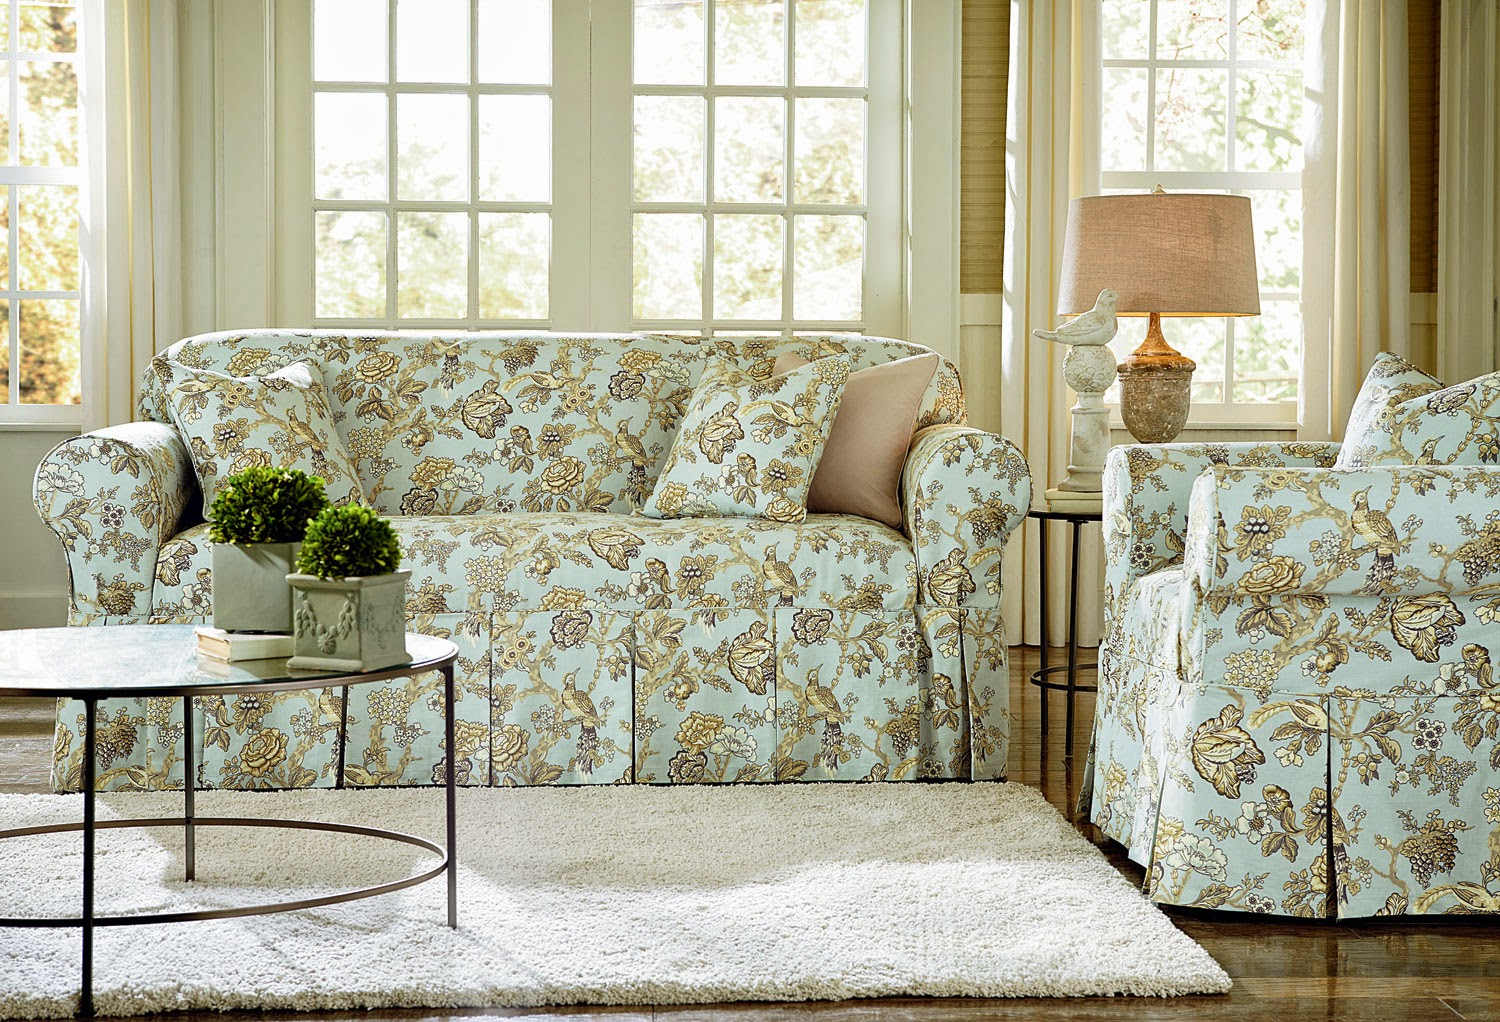 http://www.surefit.net/shop/categories/sofa-loveseat-and-chair-slipcovers-one-piece/casablanca-rose-one-piece.cfm?sku=41185&stc=0526100001